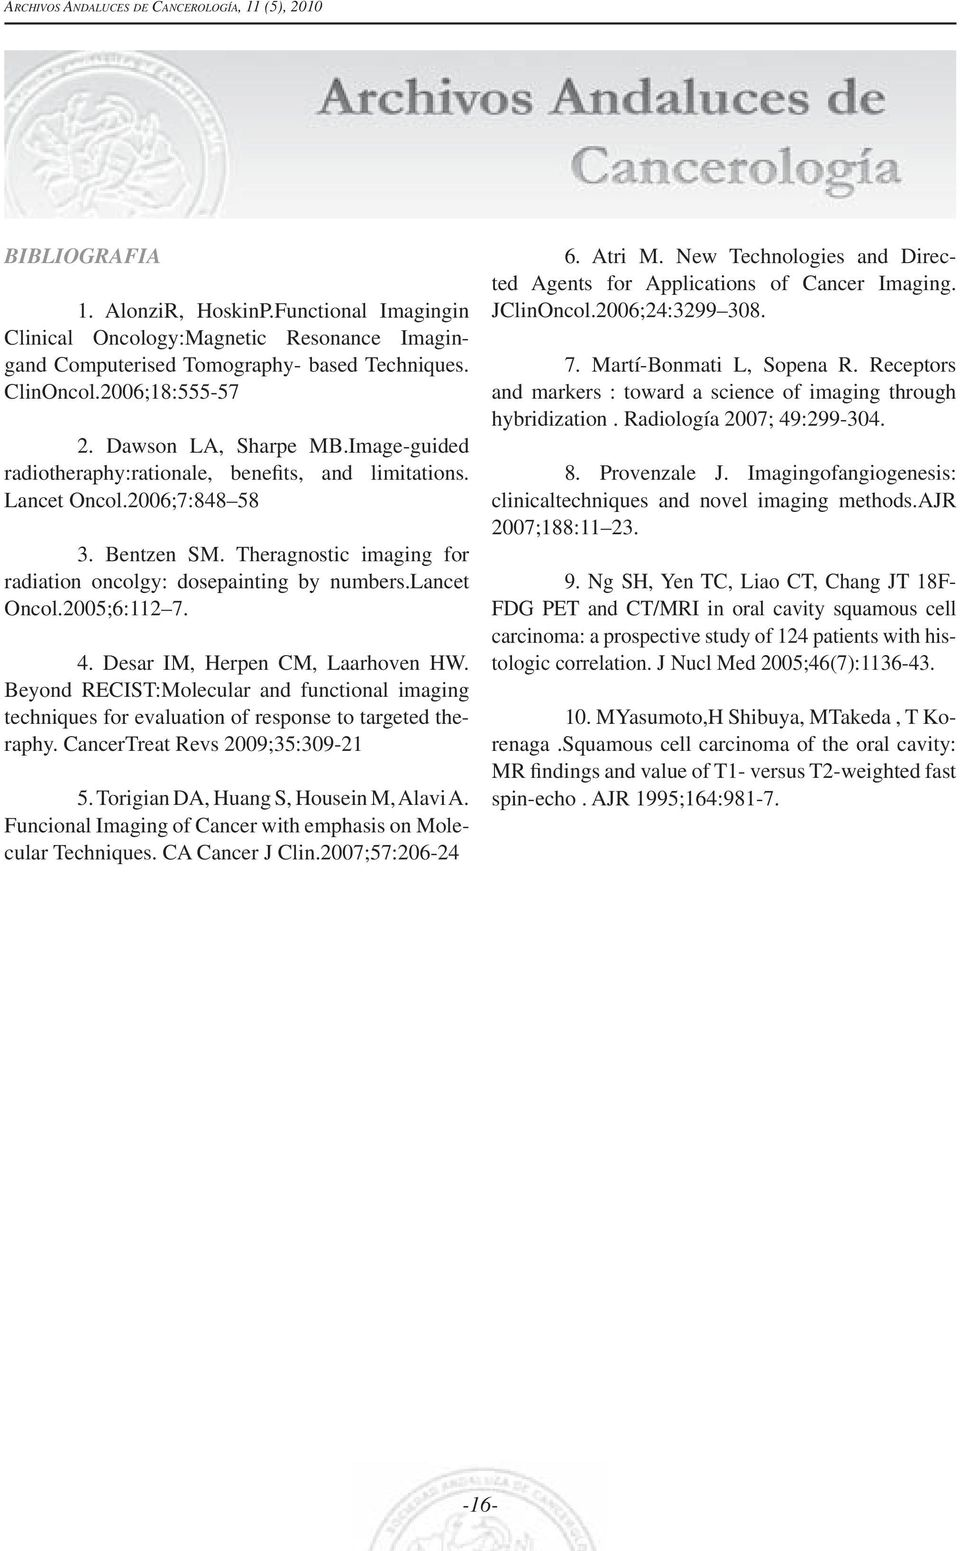 2005;6:112 7. 4. Desar IM, Herpen CM, Laarhoven HW. Beyond RECIST:Molecular and functional imaging techniques for evaluation of response to targeted theraphy. CancerTreat Revs 2009;35:309-21 5.